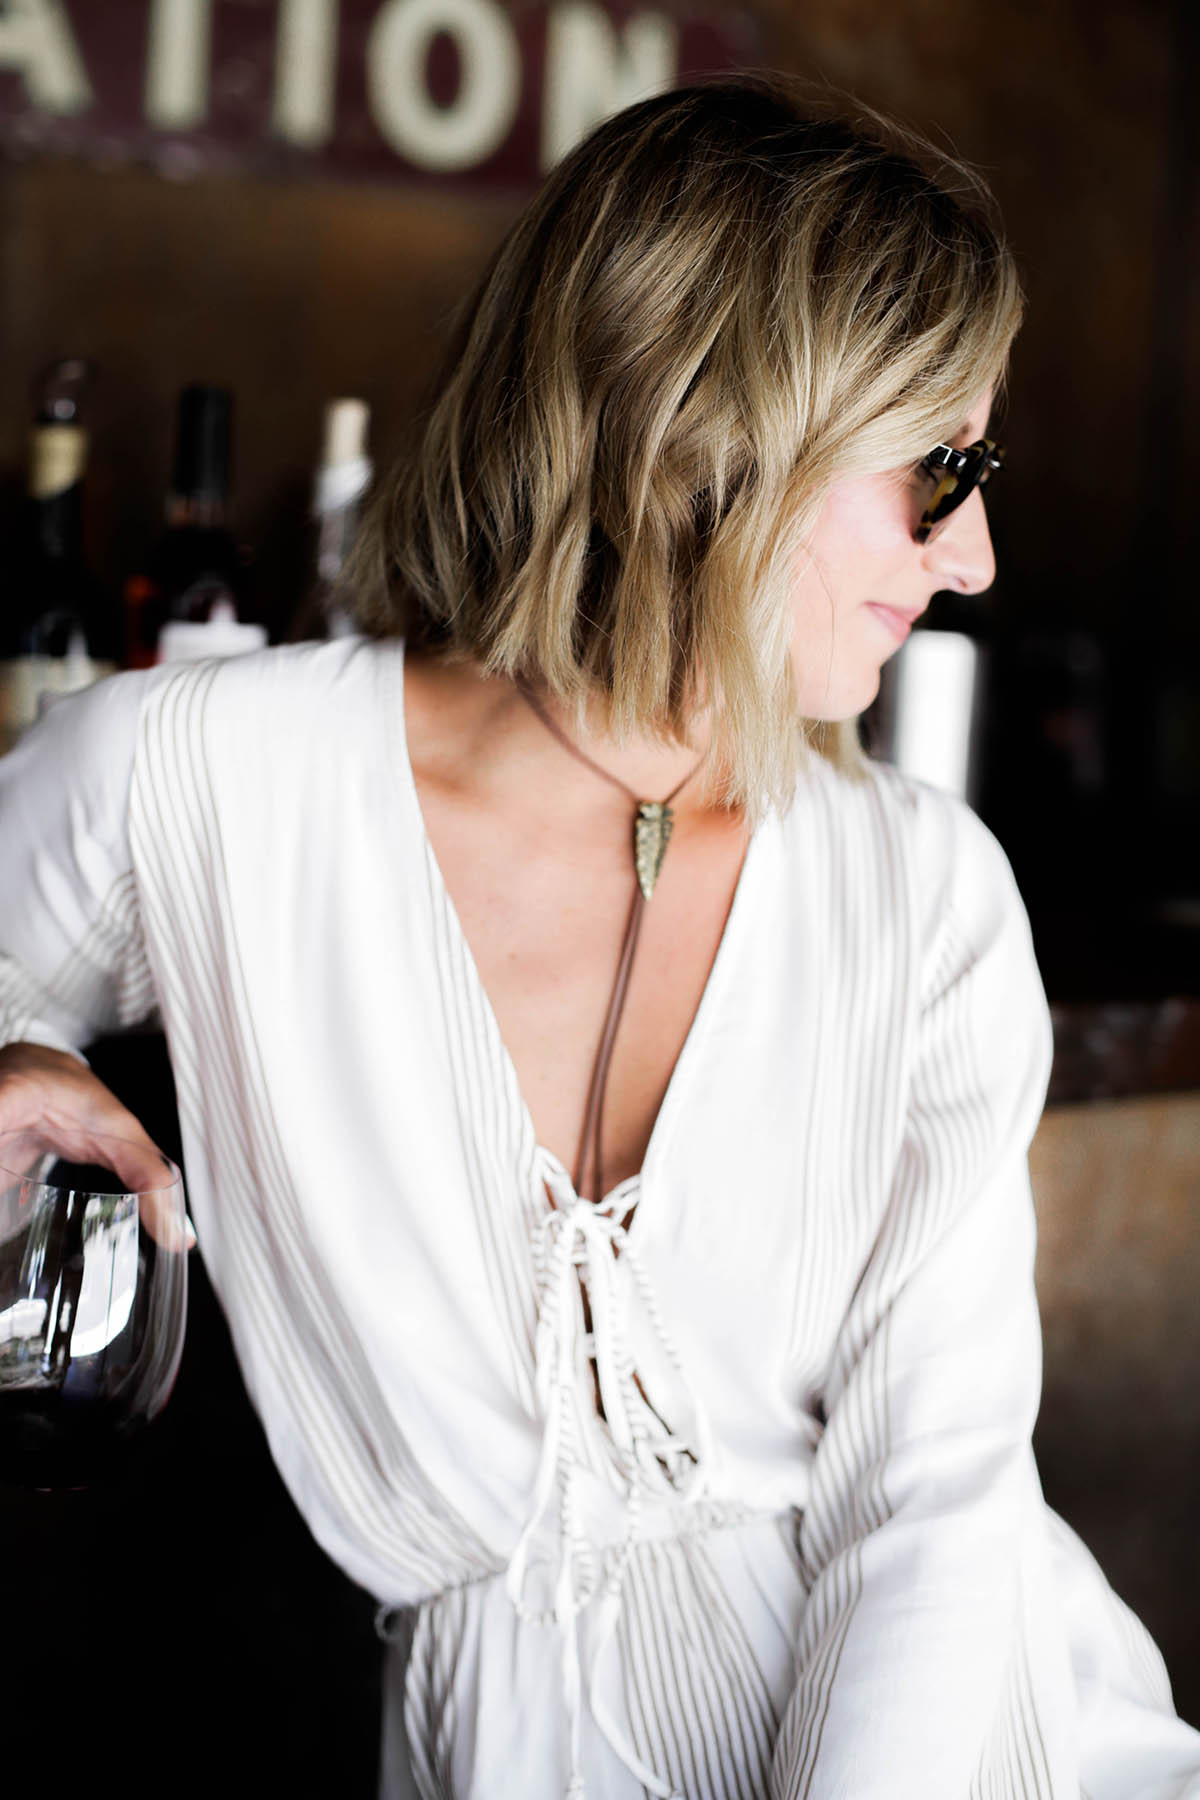 wine tasting outfit faithfull the brand romper at tank garage winery